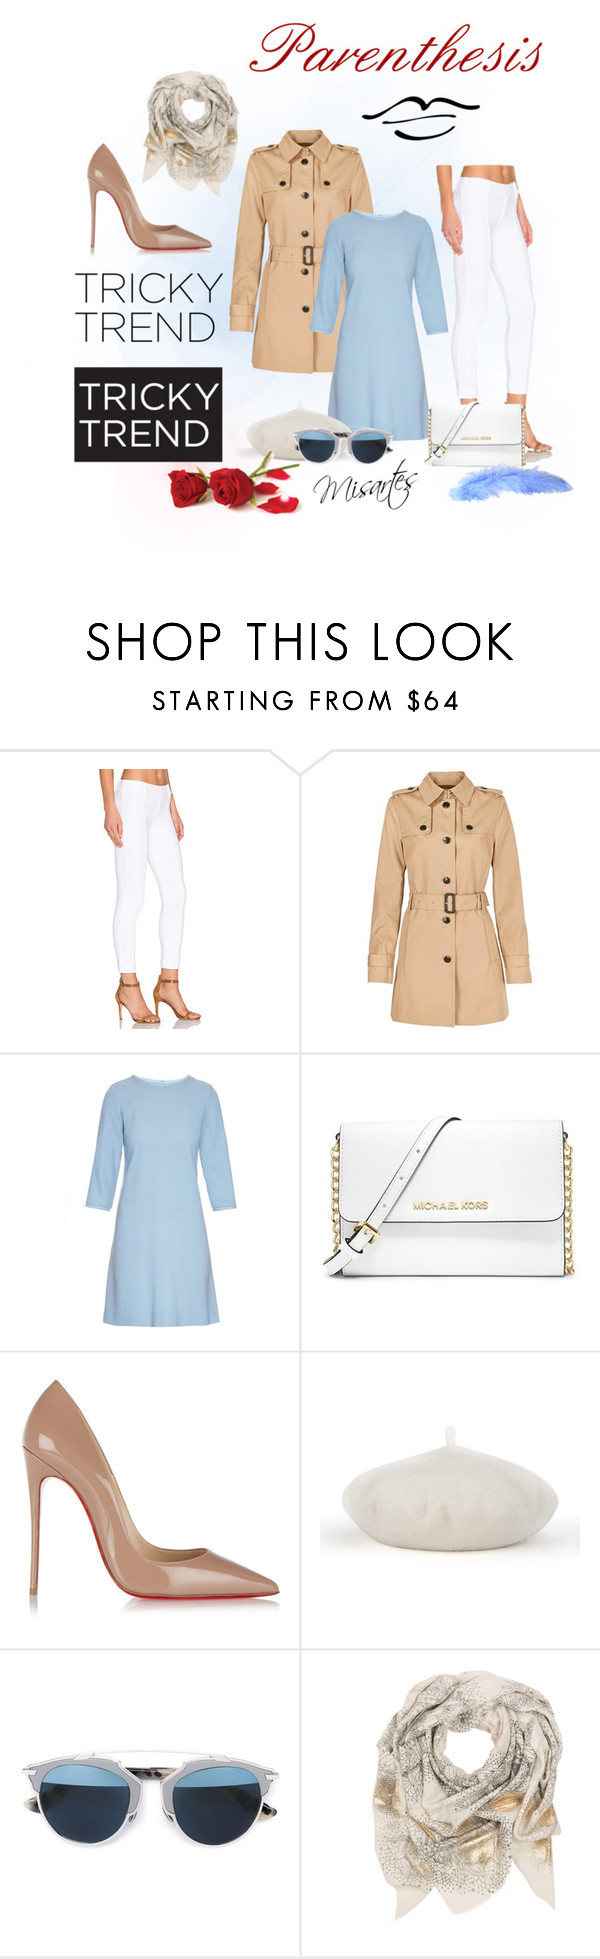 """""""Parenthesis"""" by misartes ❤ liked on Polyvore featuring Three Dots, Tommy Hilfiger, Goat, MICHAEL Michael Kors, Christian Louboutin, Christian Dior and Sophie Darling"""